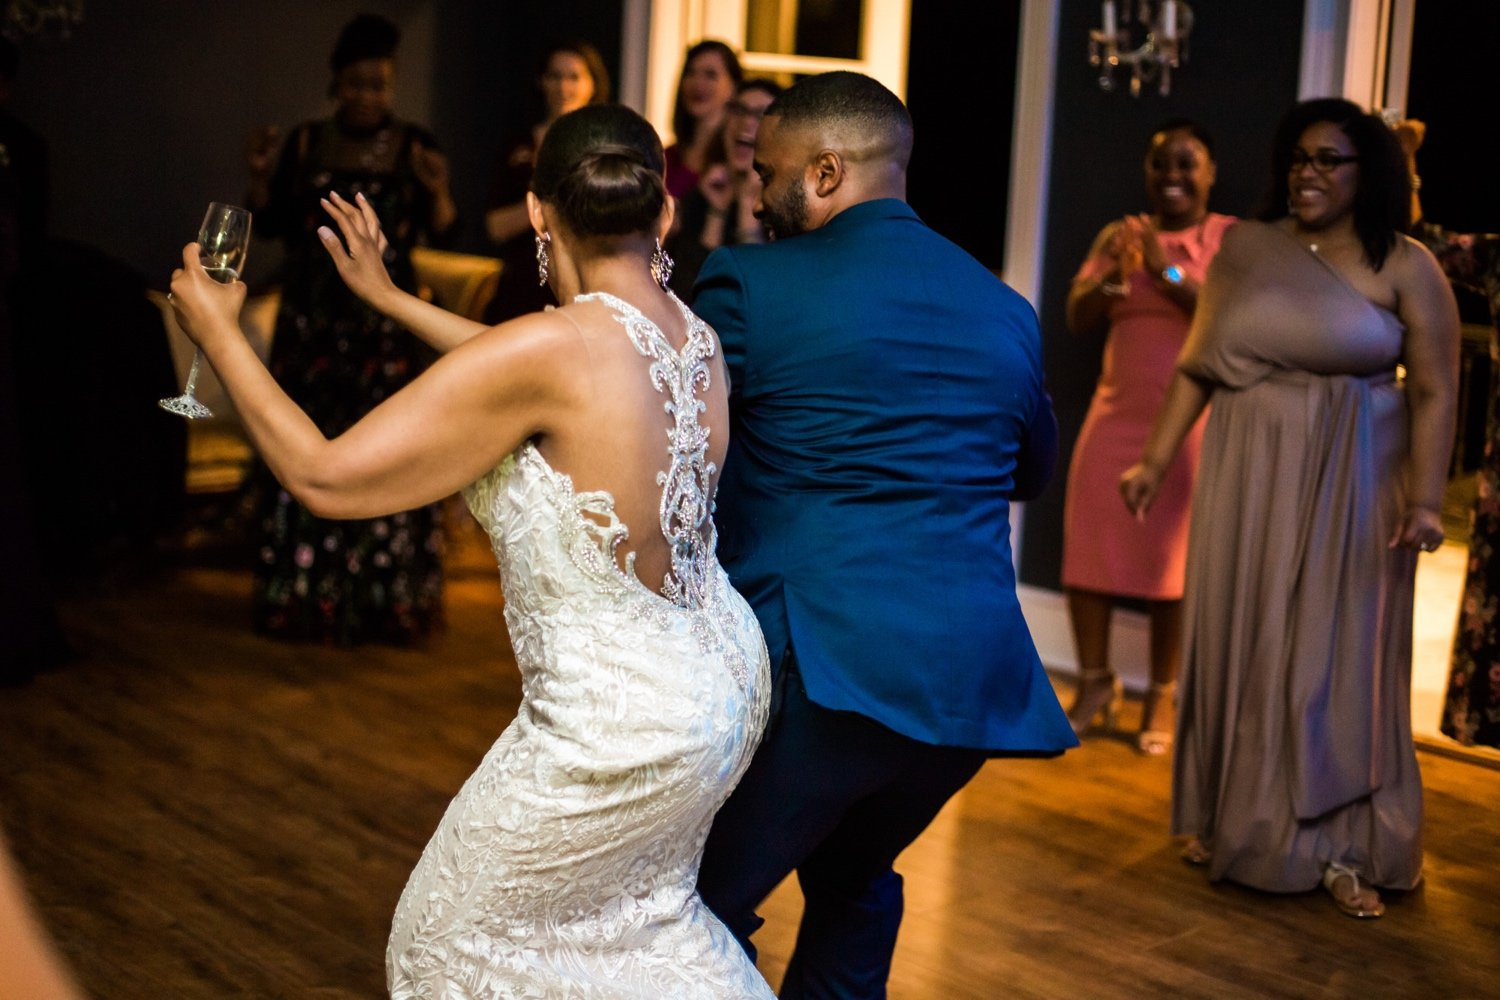 bride and groom bumping waists as they dance to music during the reception